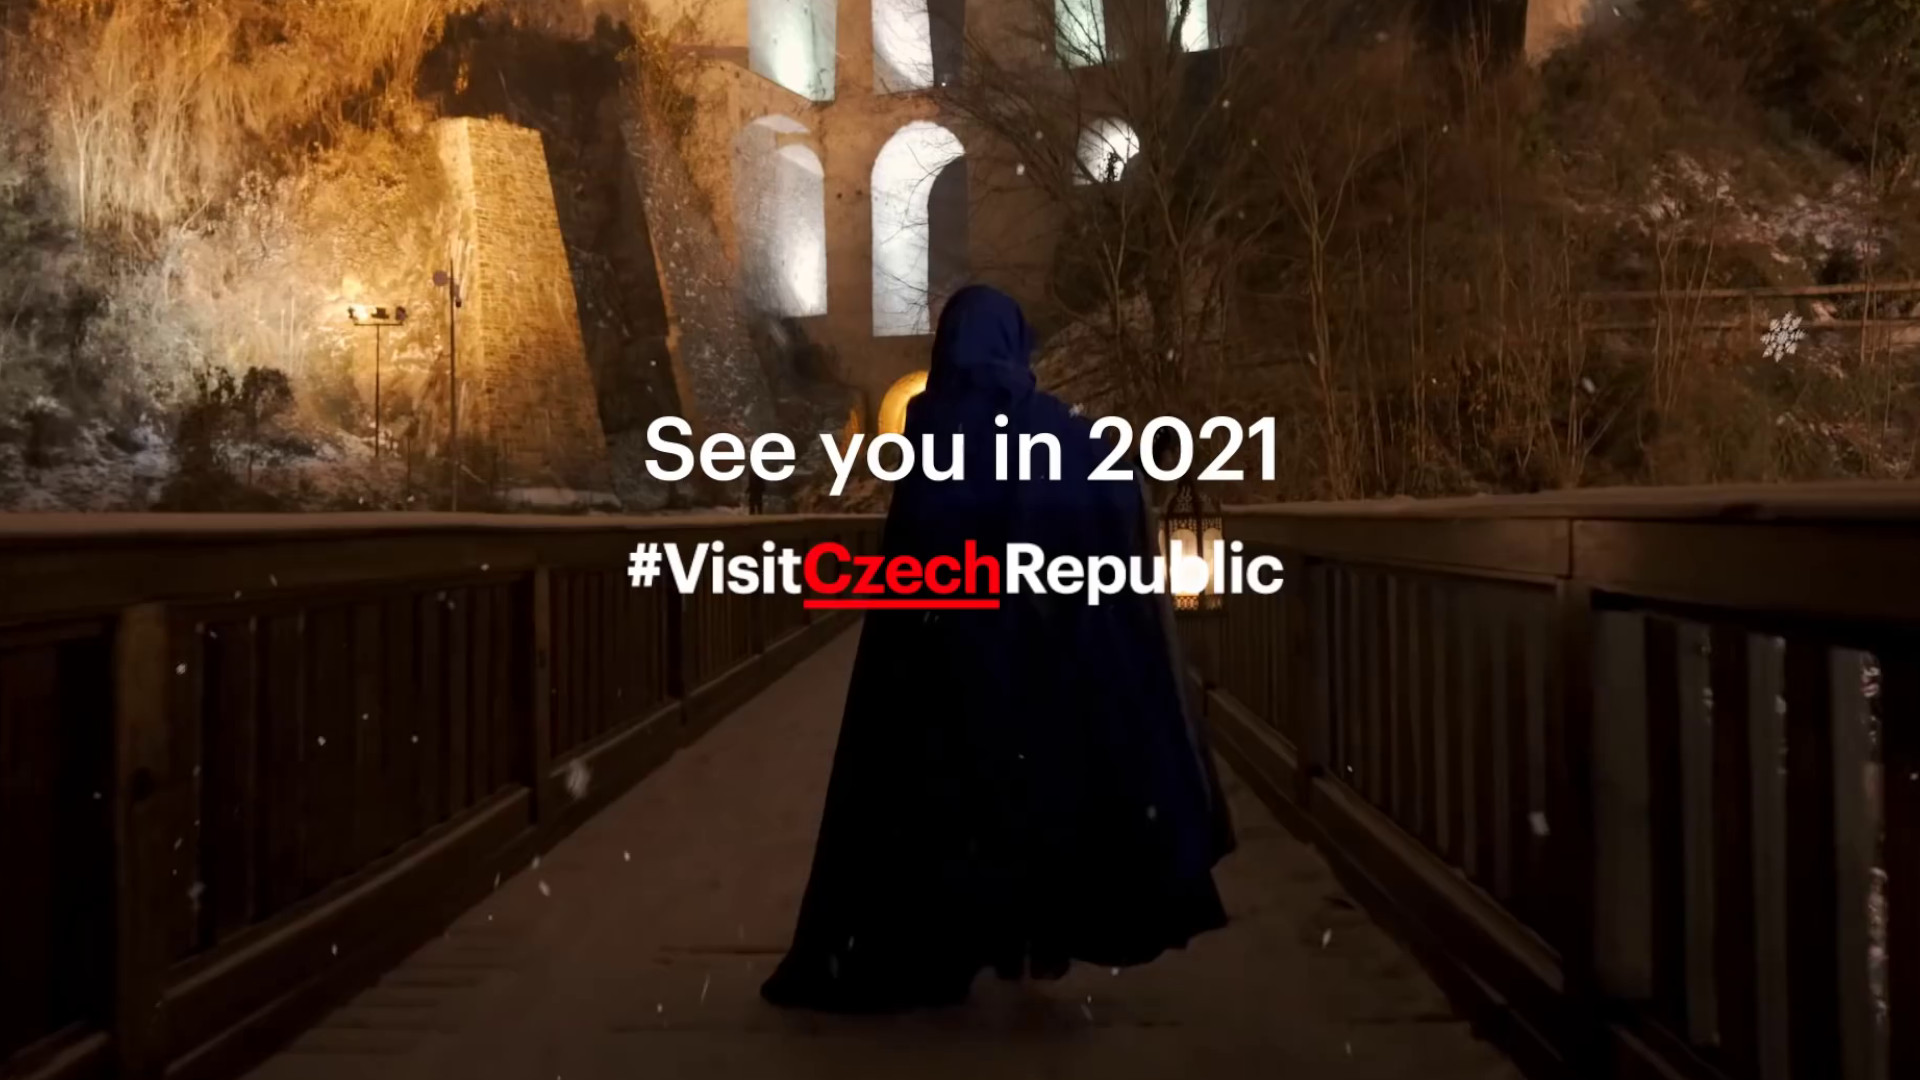 See You 2021, Ad Campaign by CzechTourism